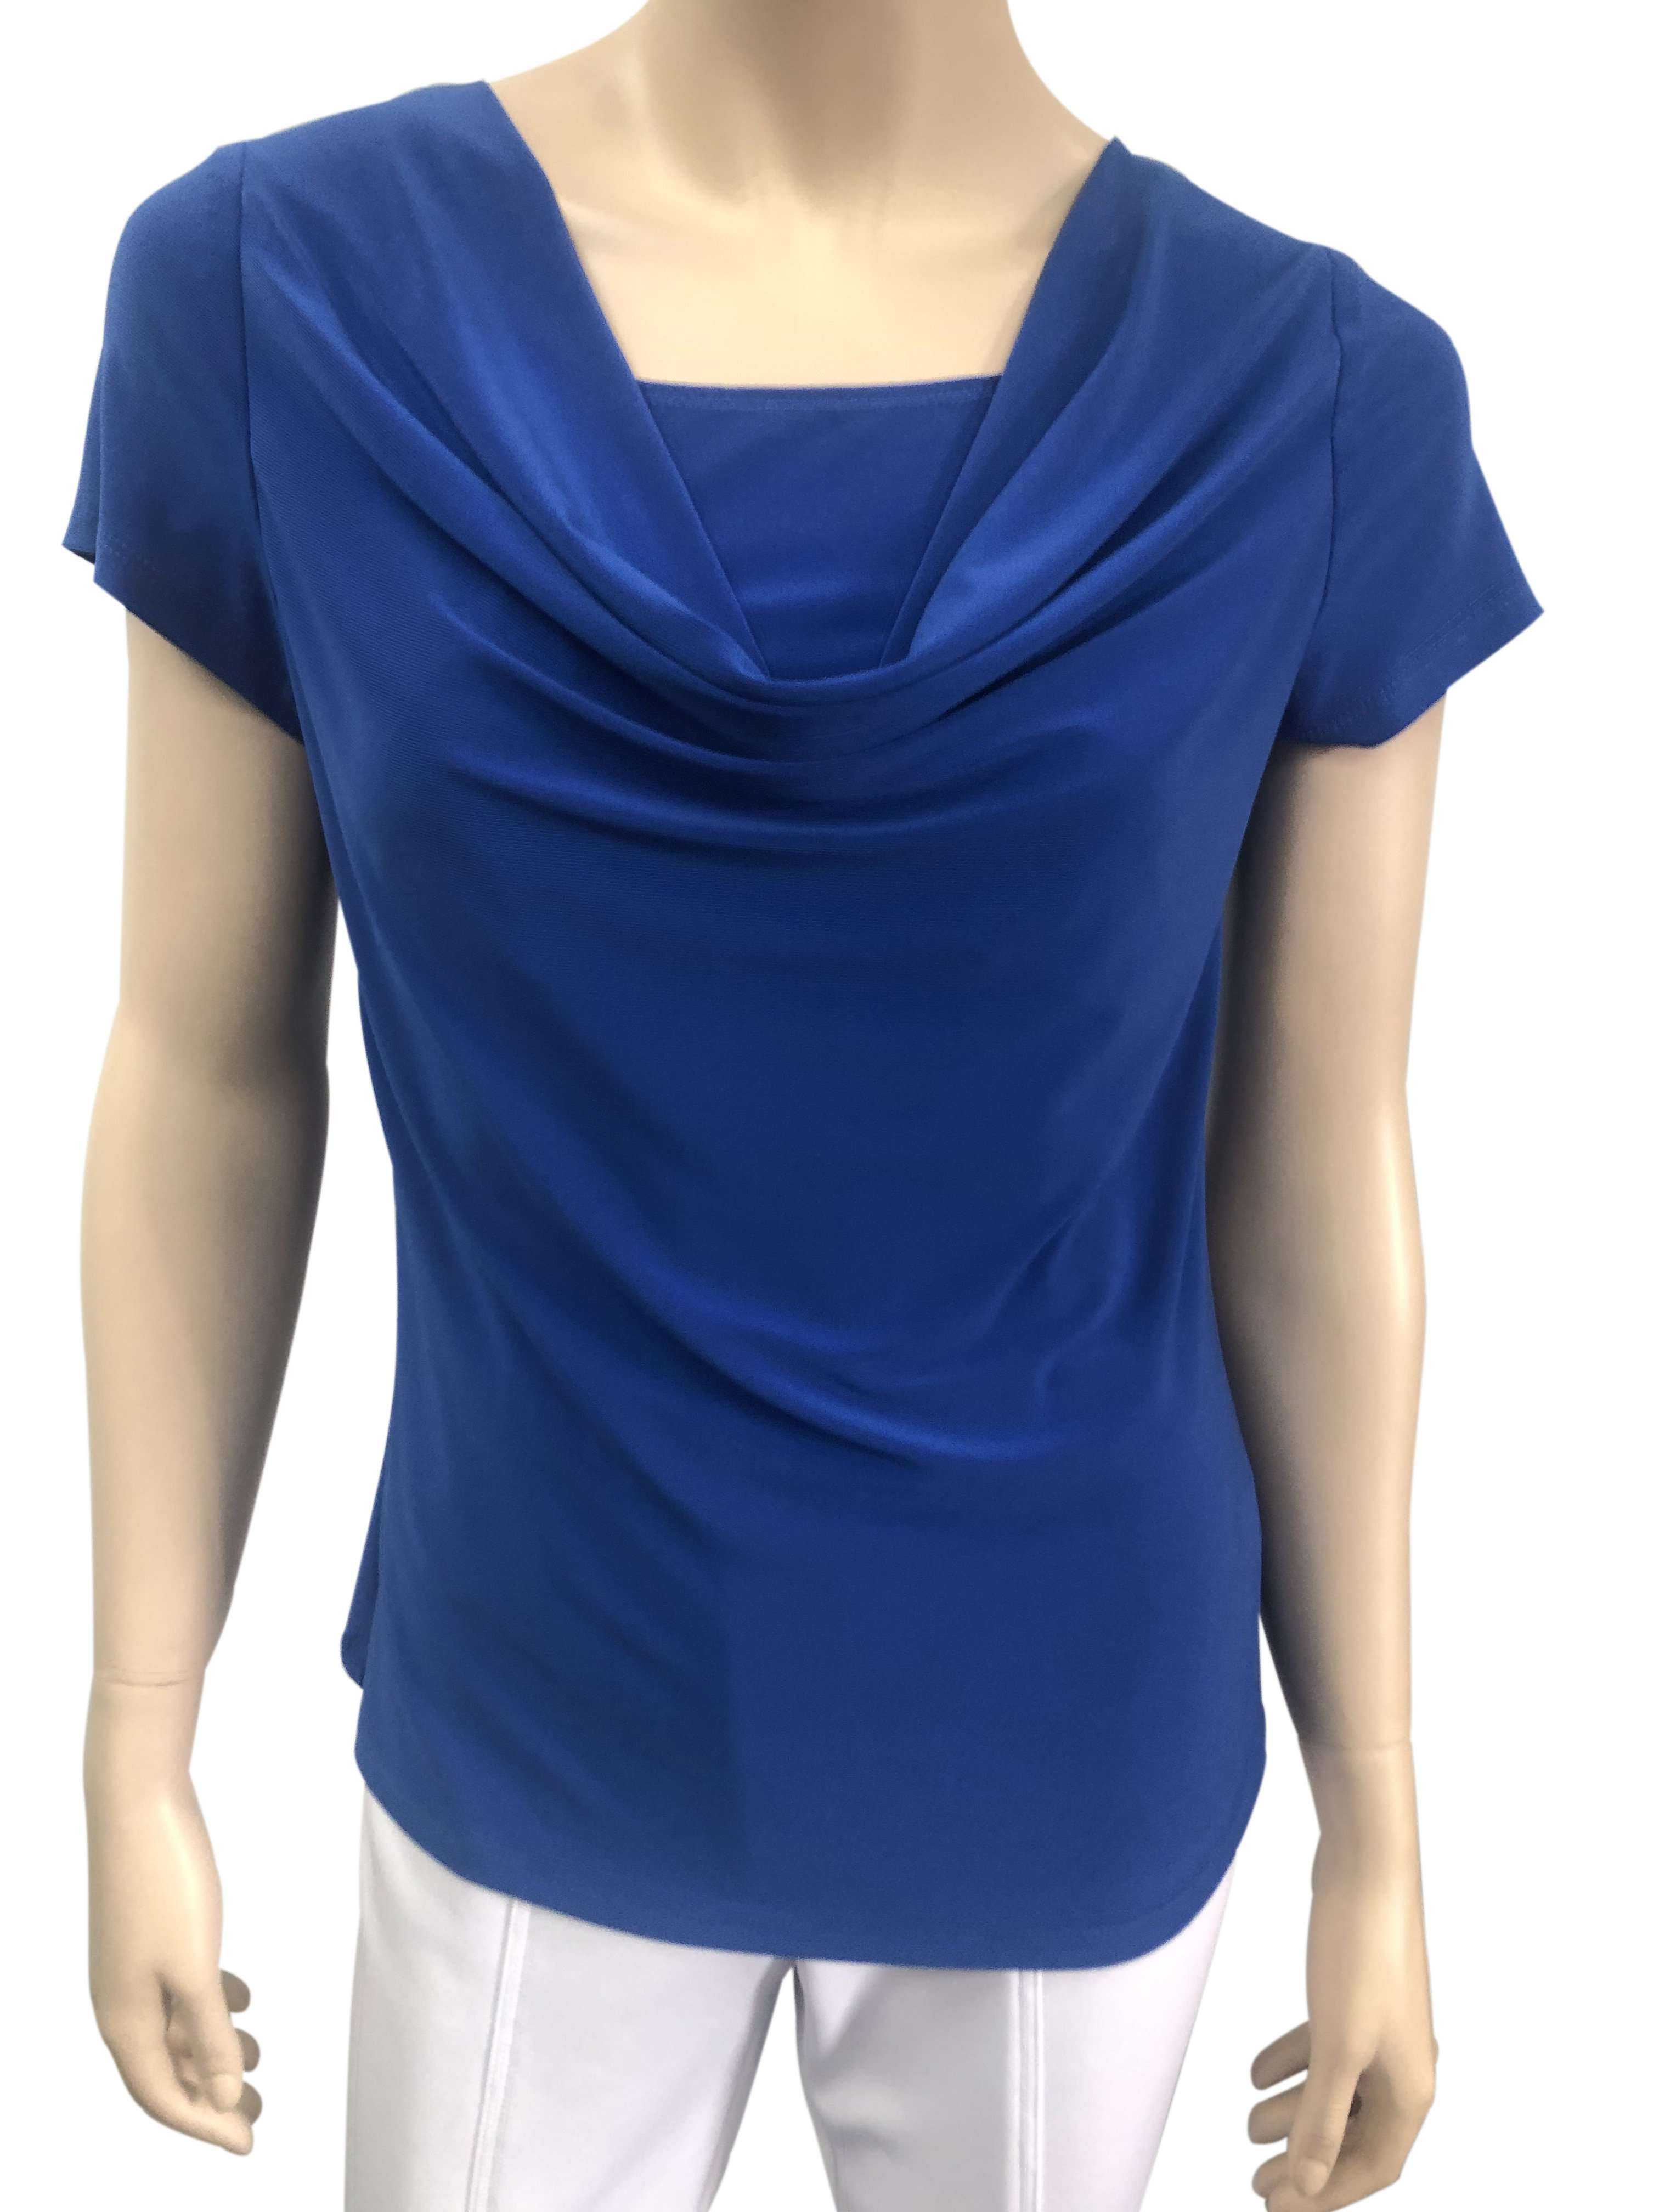 Women's Royal Blue Top On Sale Cowl Neckline Best Seller - Yvonne Marie